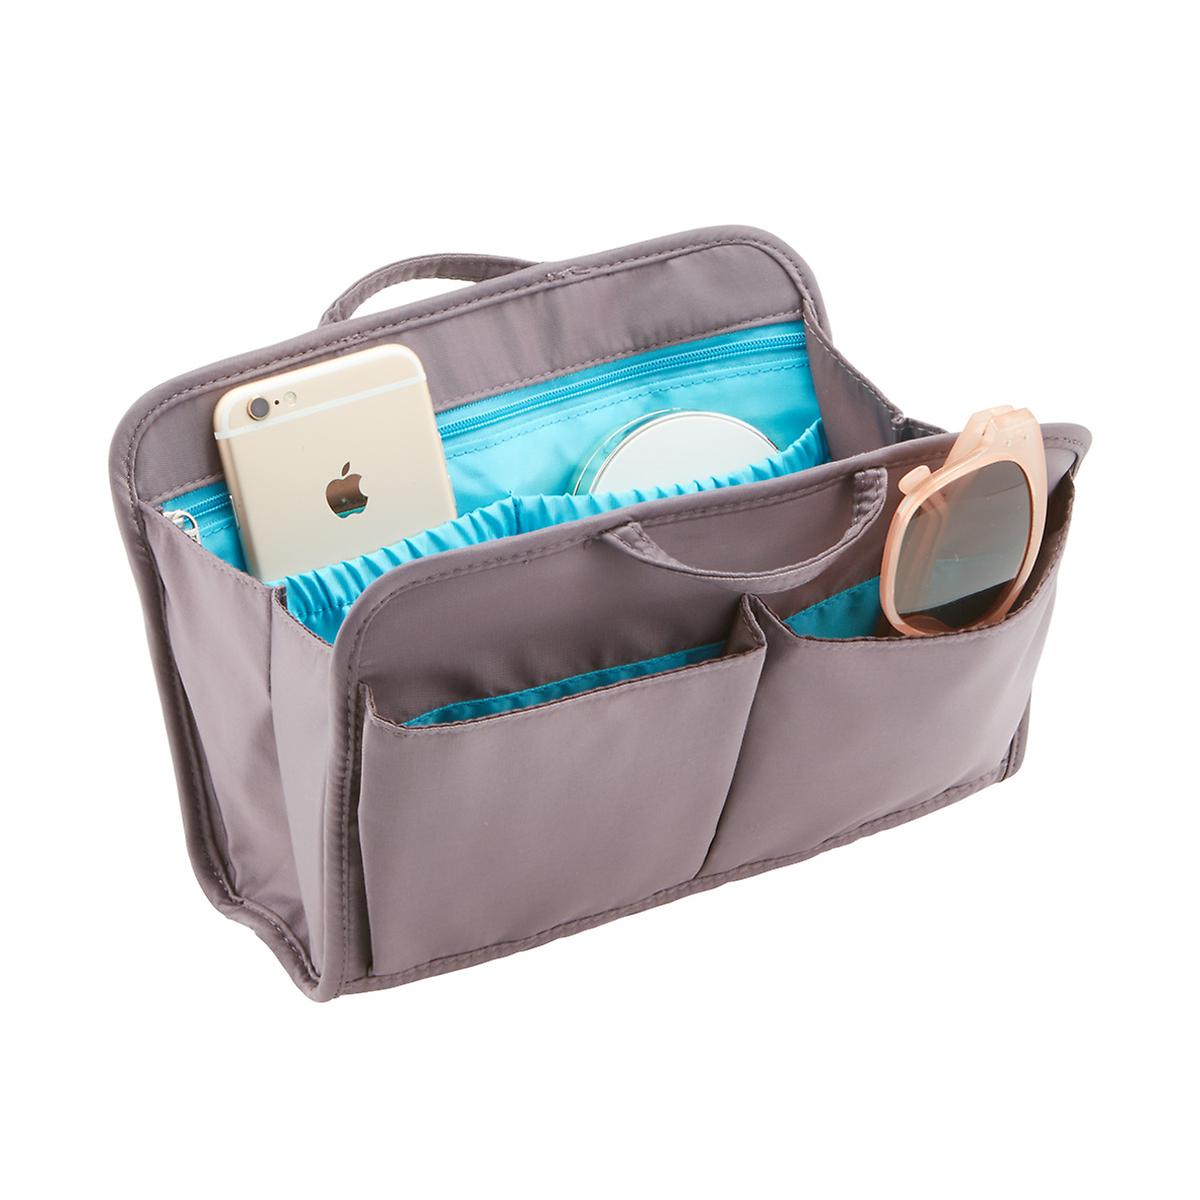 Travelon Pewter Rfid Blocking Purse Organizer